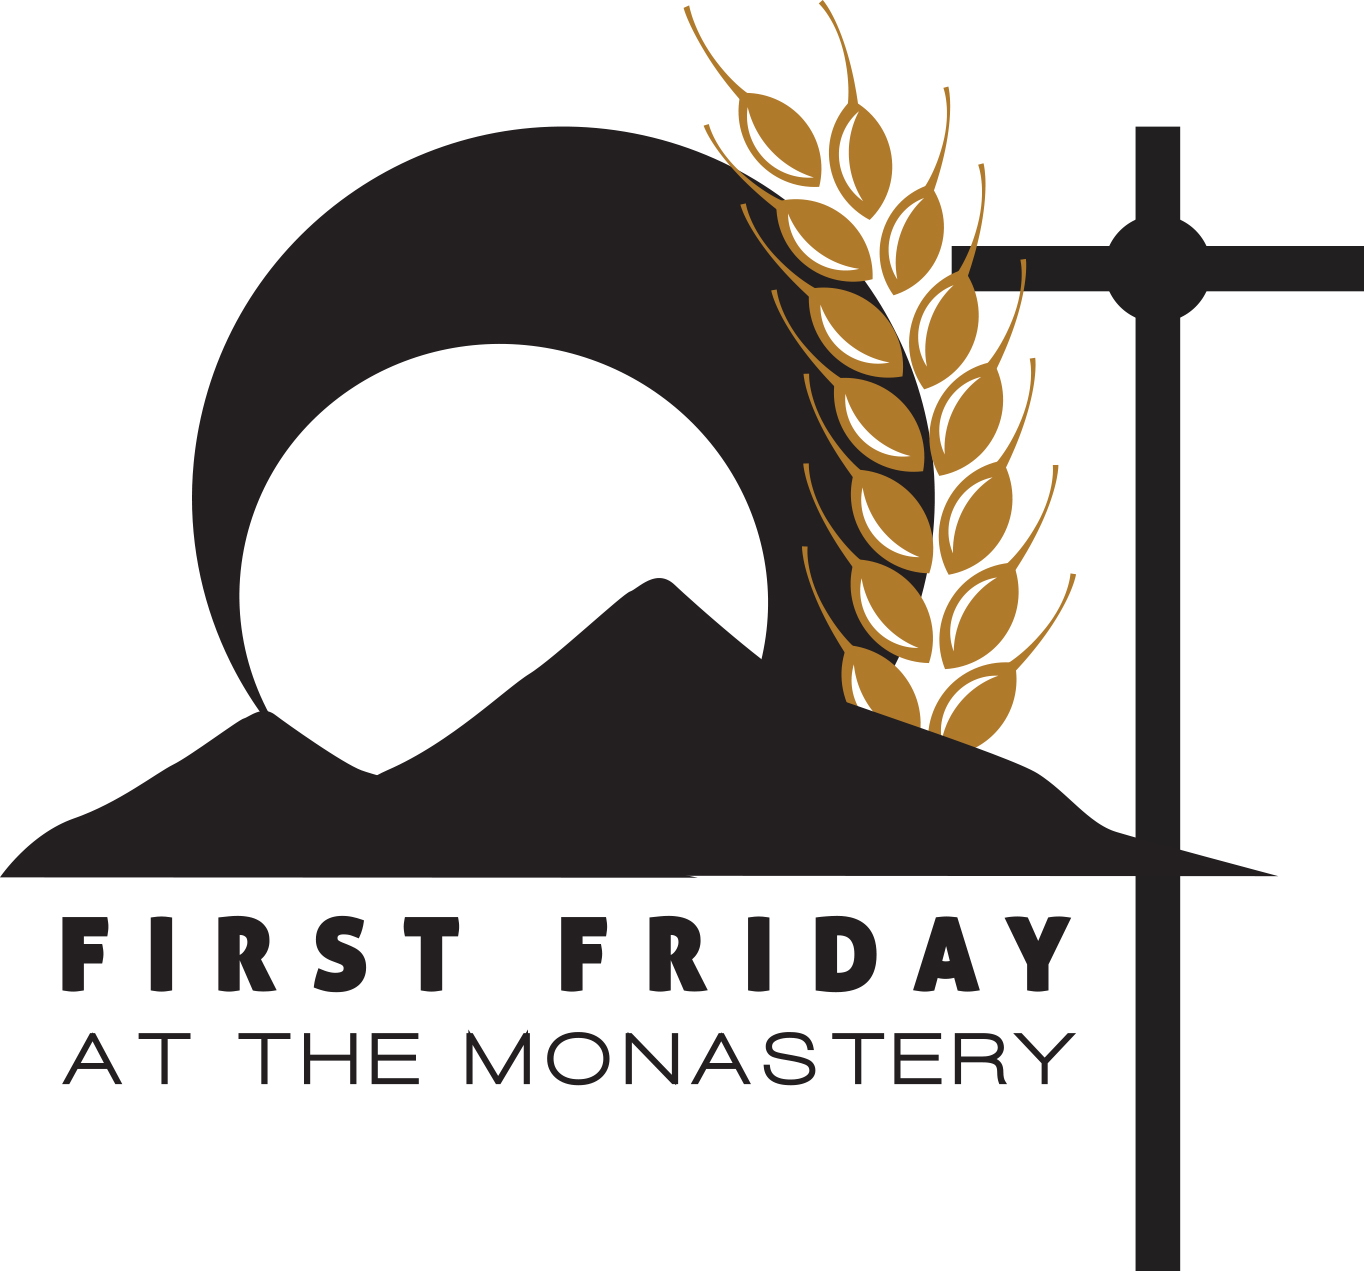 First Friday at the Monastery - NOVEMBER